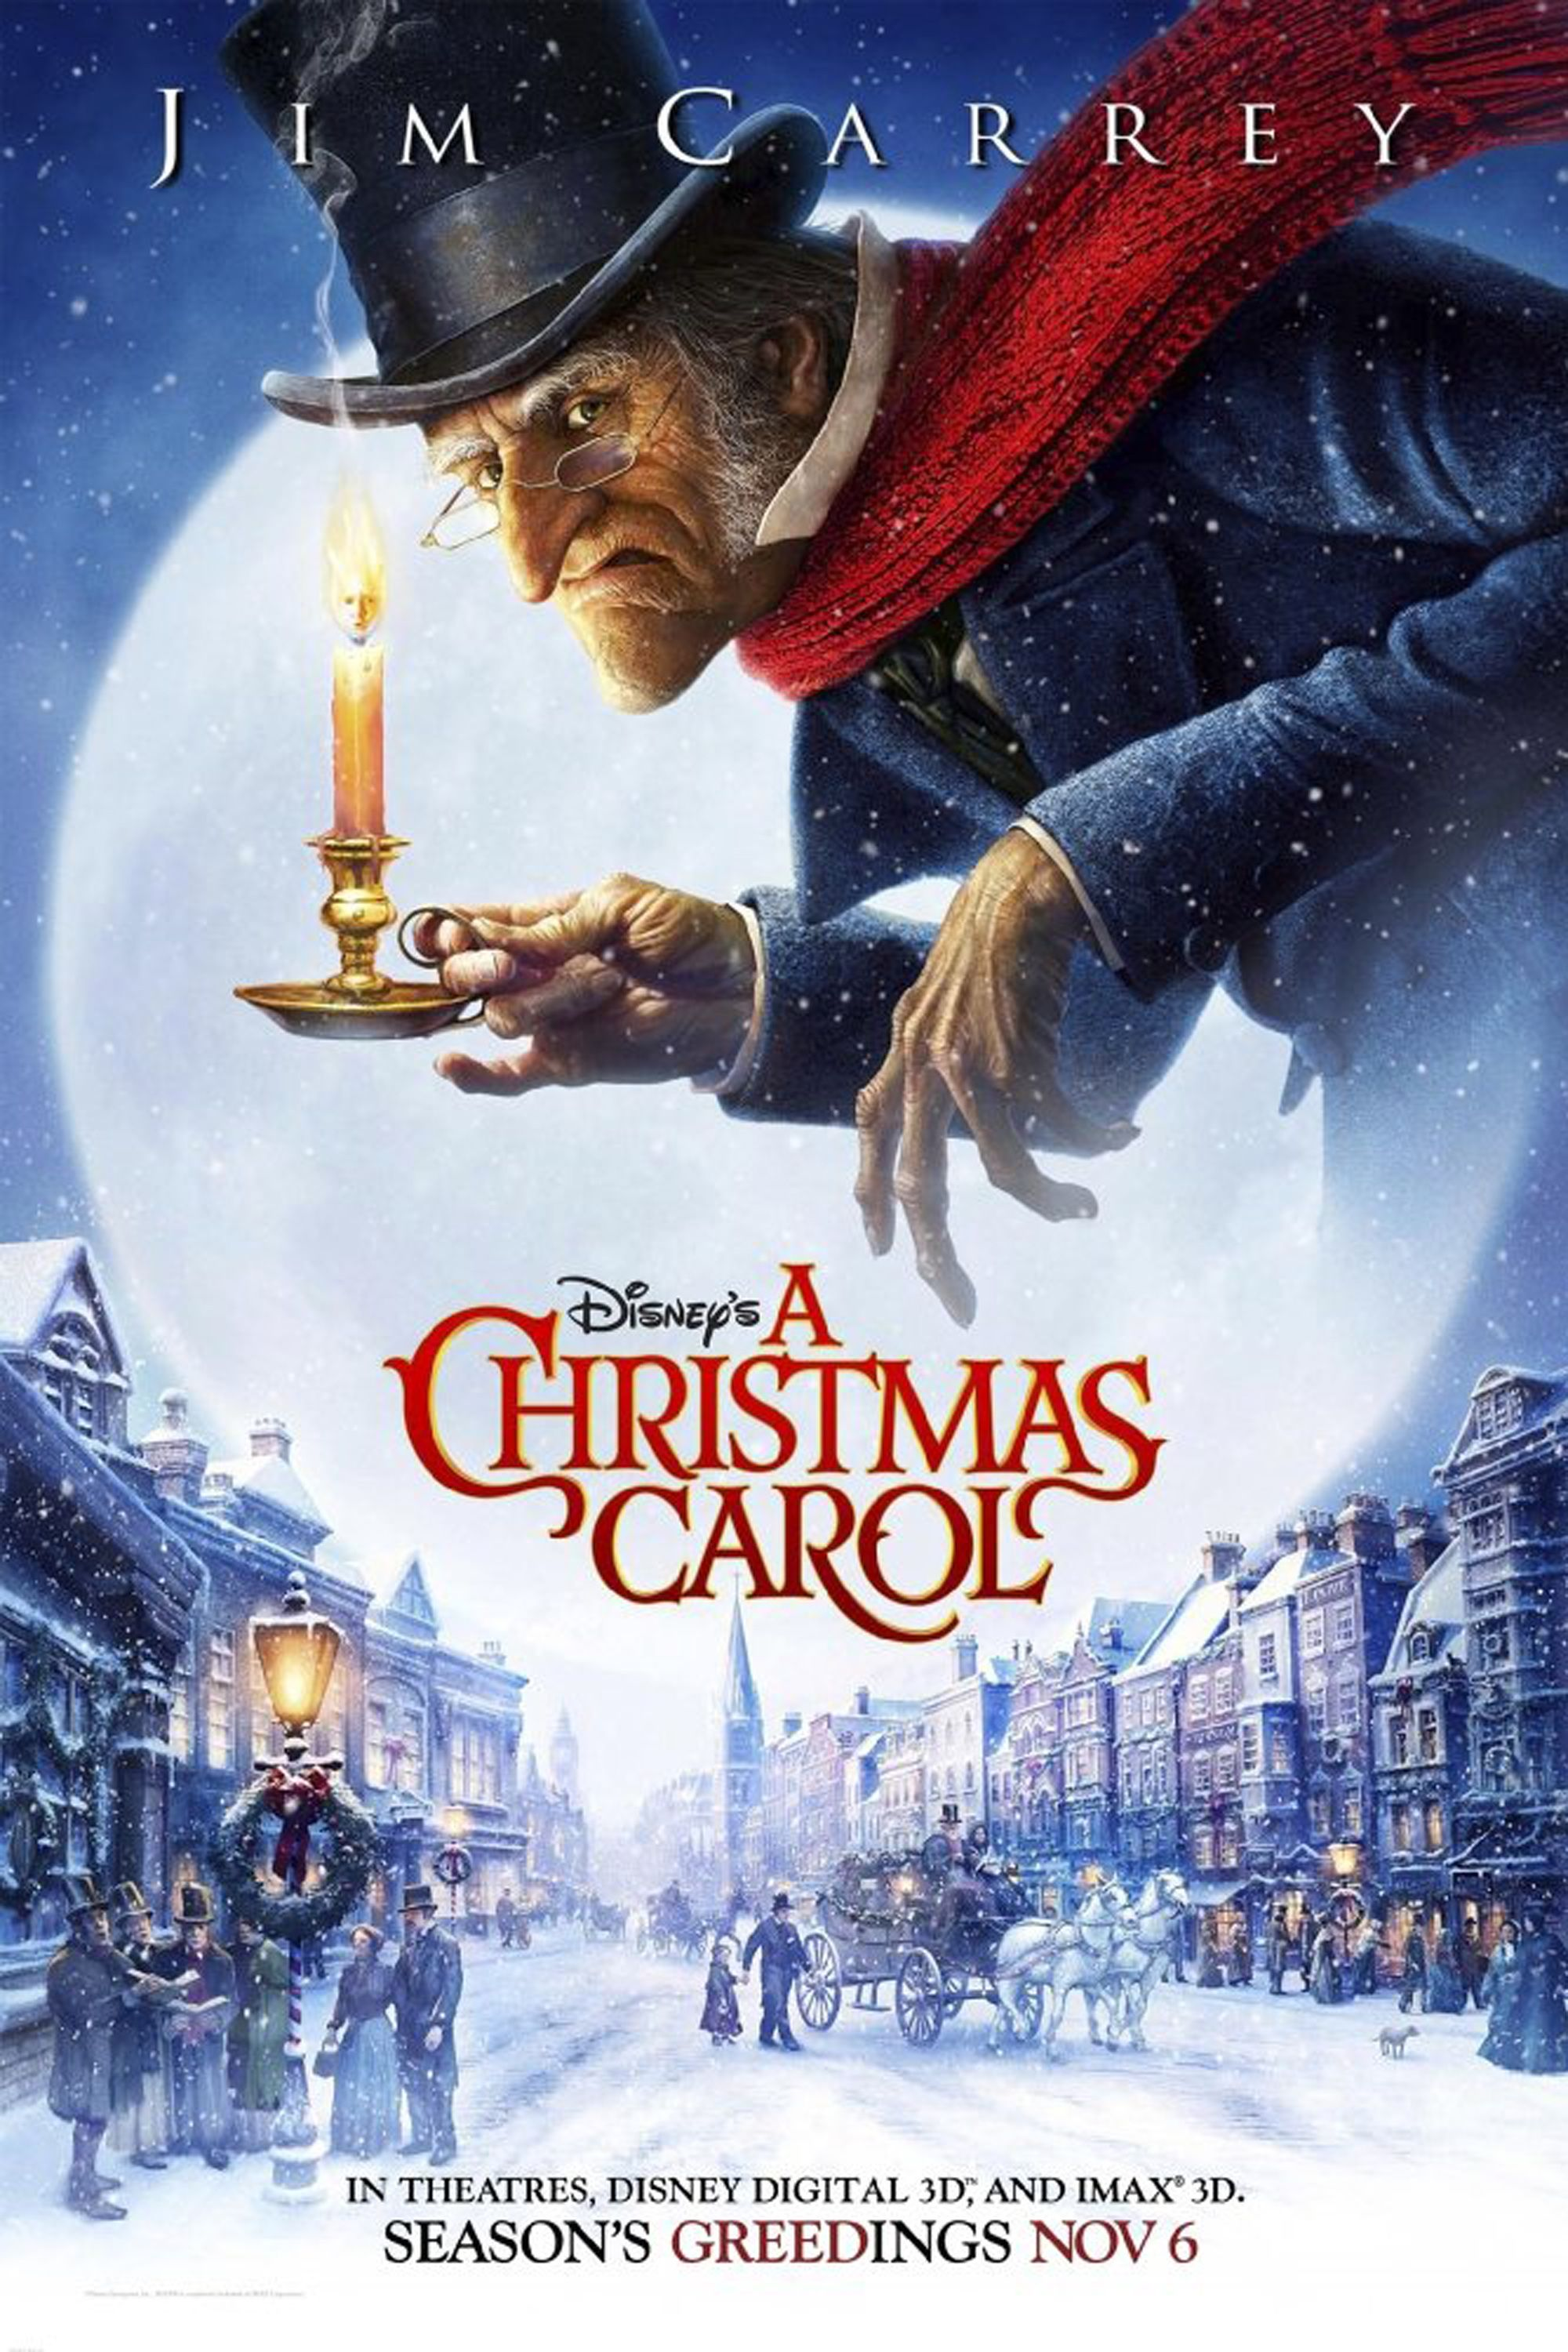 12 Best Disney Christmas Movies - Disney Christmas Movies on Netflix